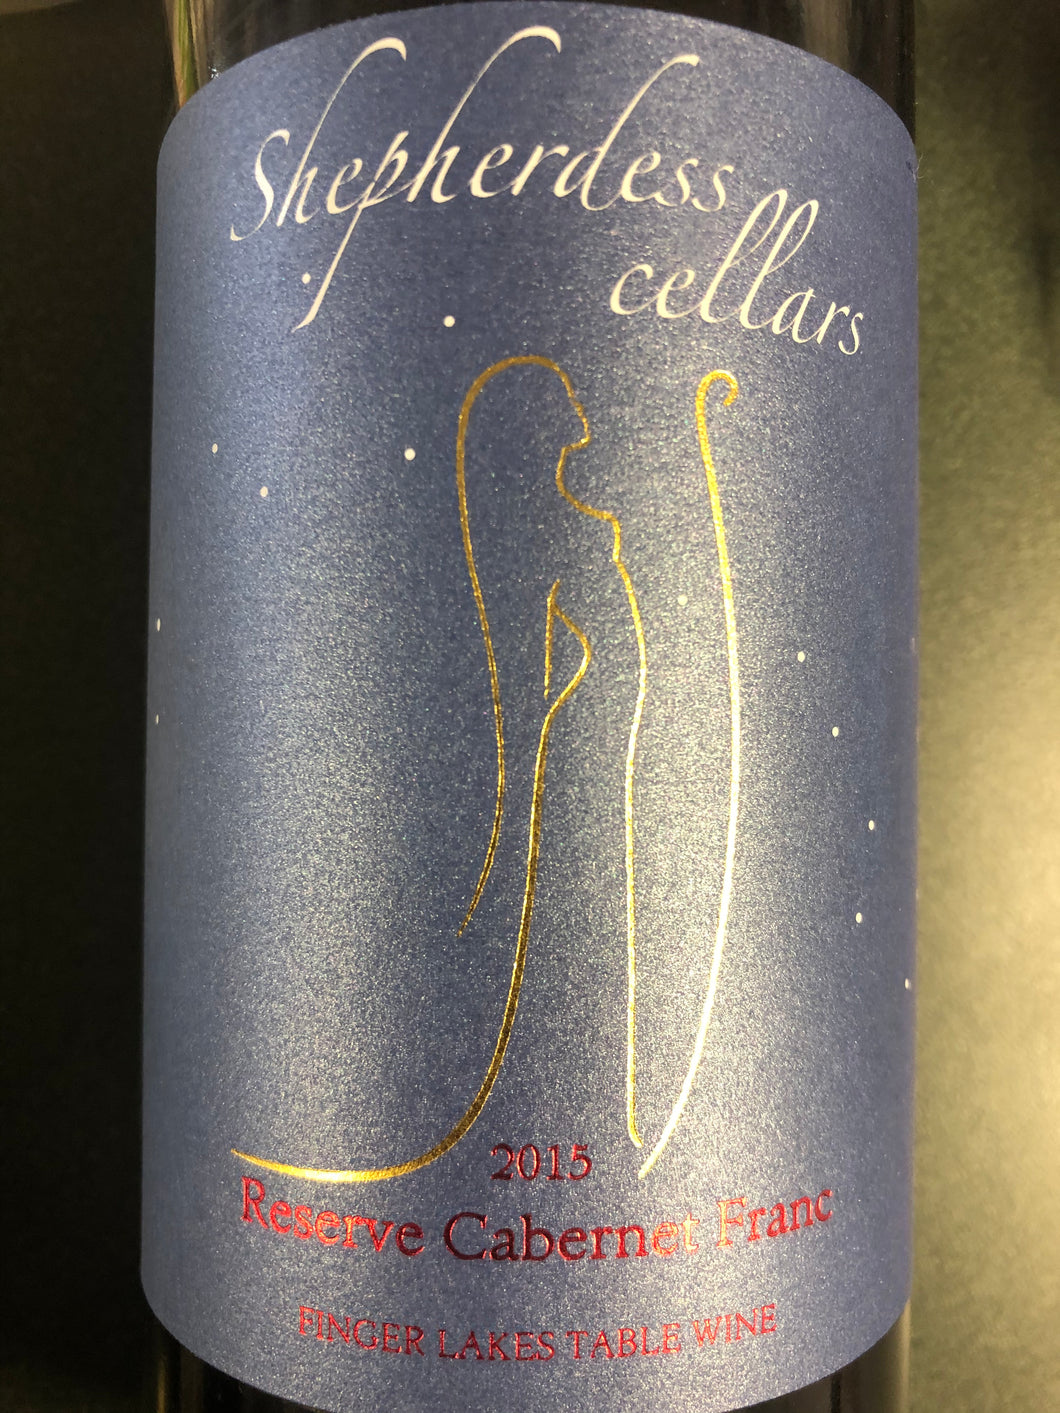 Shepherdess Cellars Cabernet Franc Reserve, Finger Lakes 2015